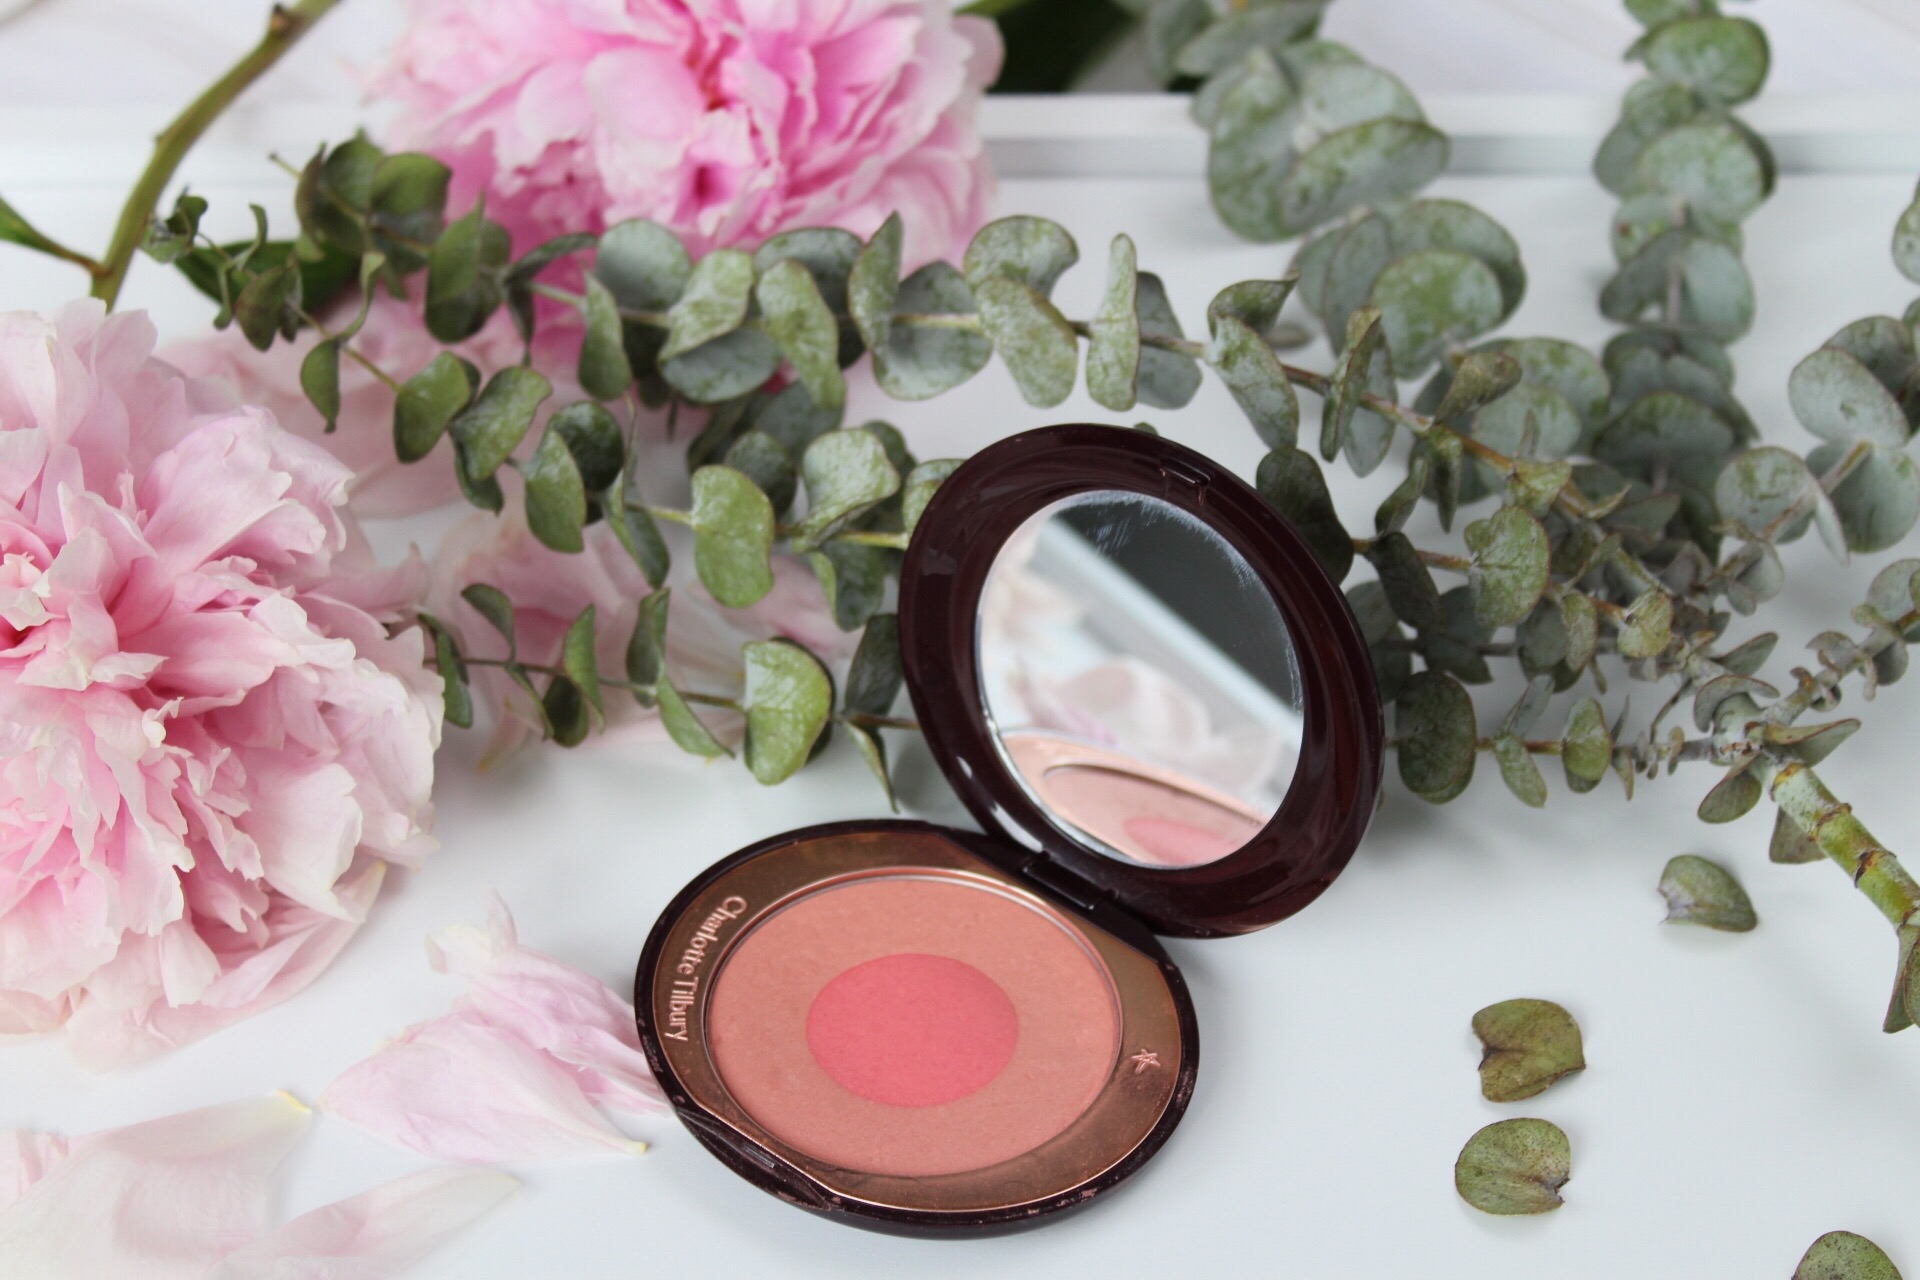 JULY BEAUTY FAVOURITES CHARLOTTE TILBURY BLUSHER